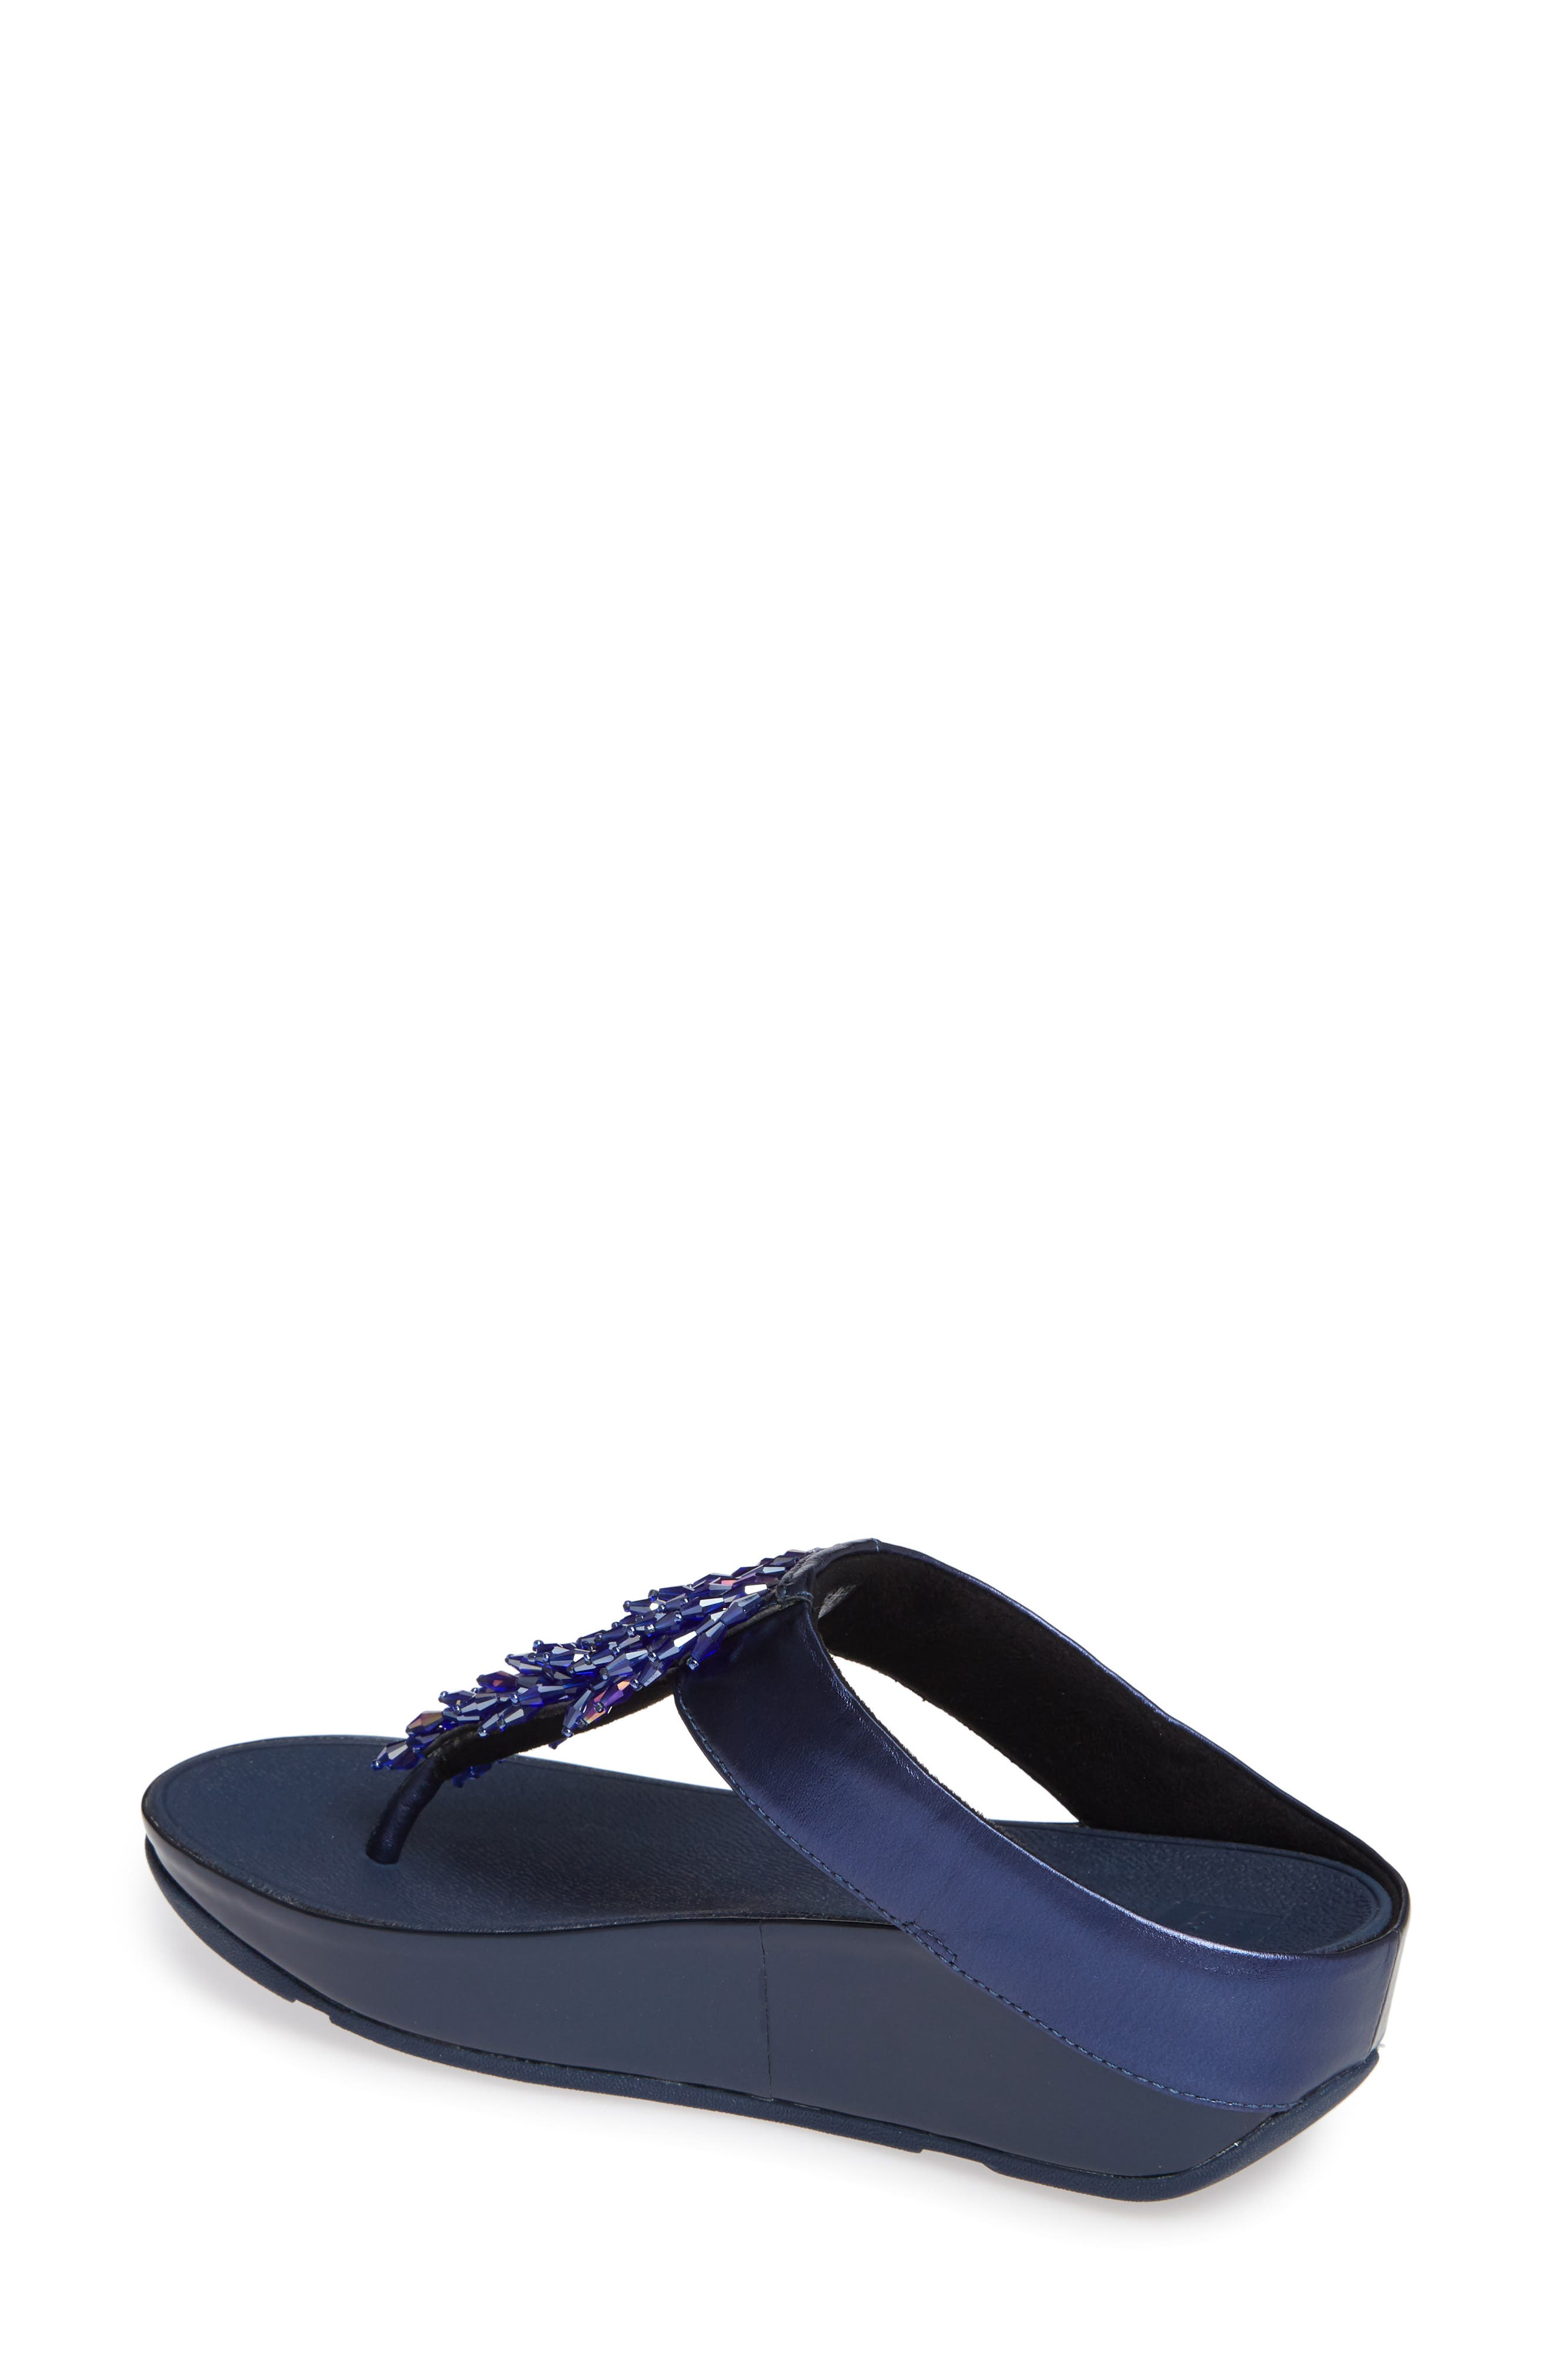 Rumba Flip Flop,                             Alternate thumbnail 2, color,                             METEOR BLUE LEATHER